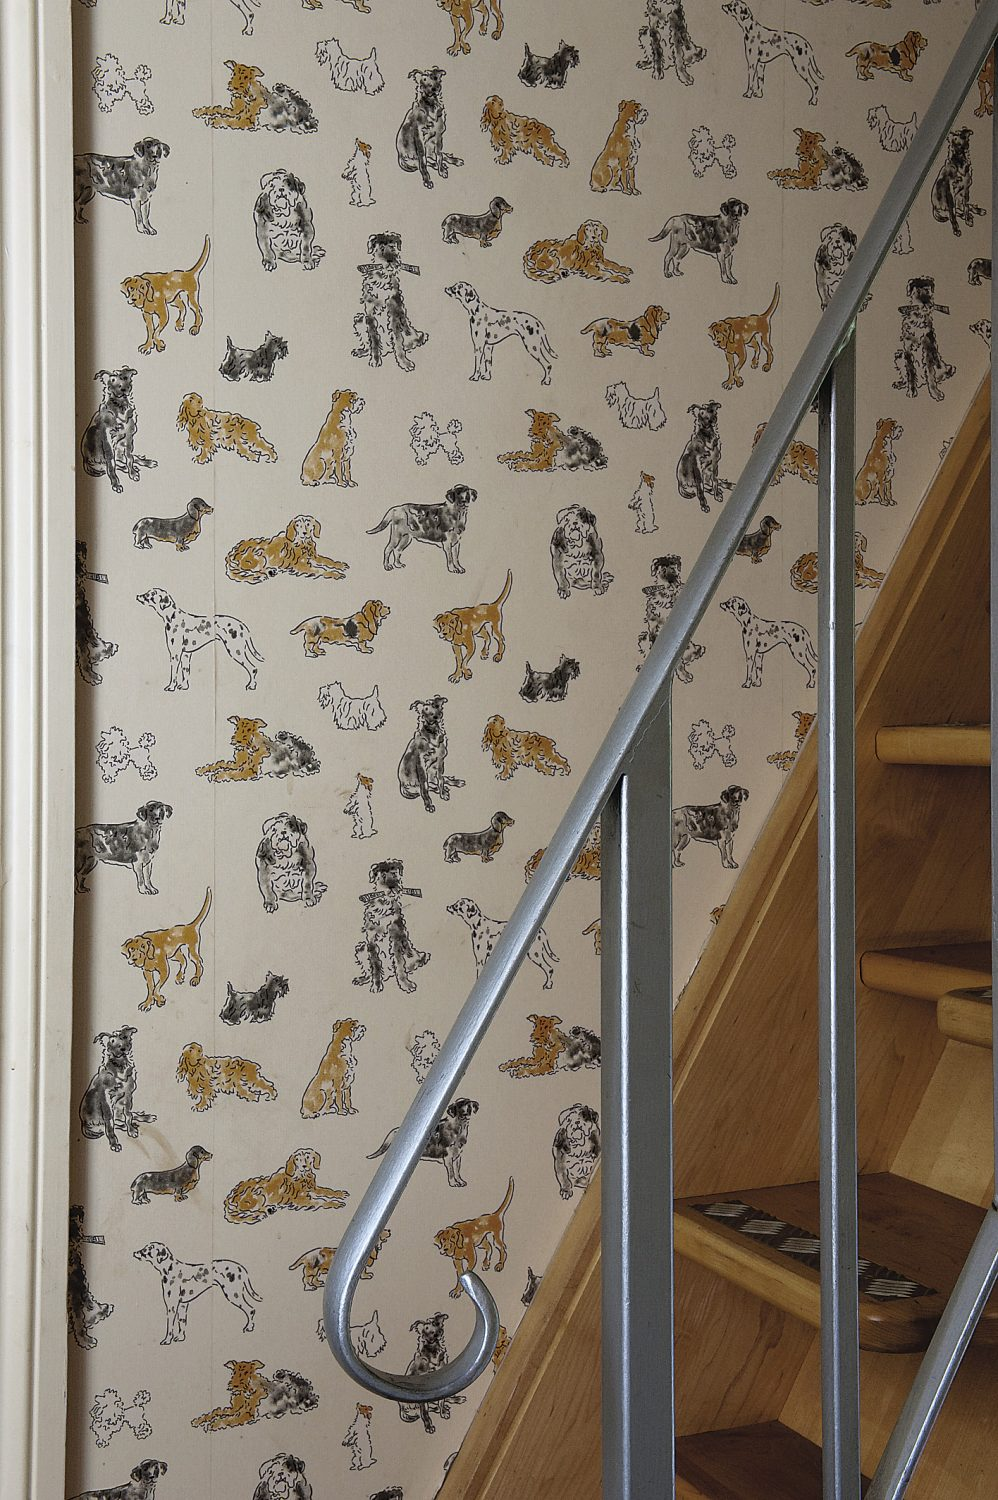 Cappuccino the dog's room, covered in a rather fantastic dog-print wallpaper!